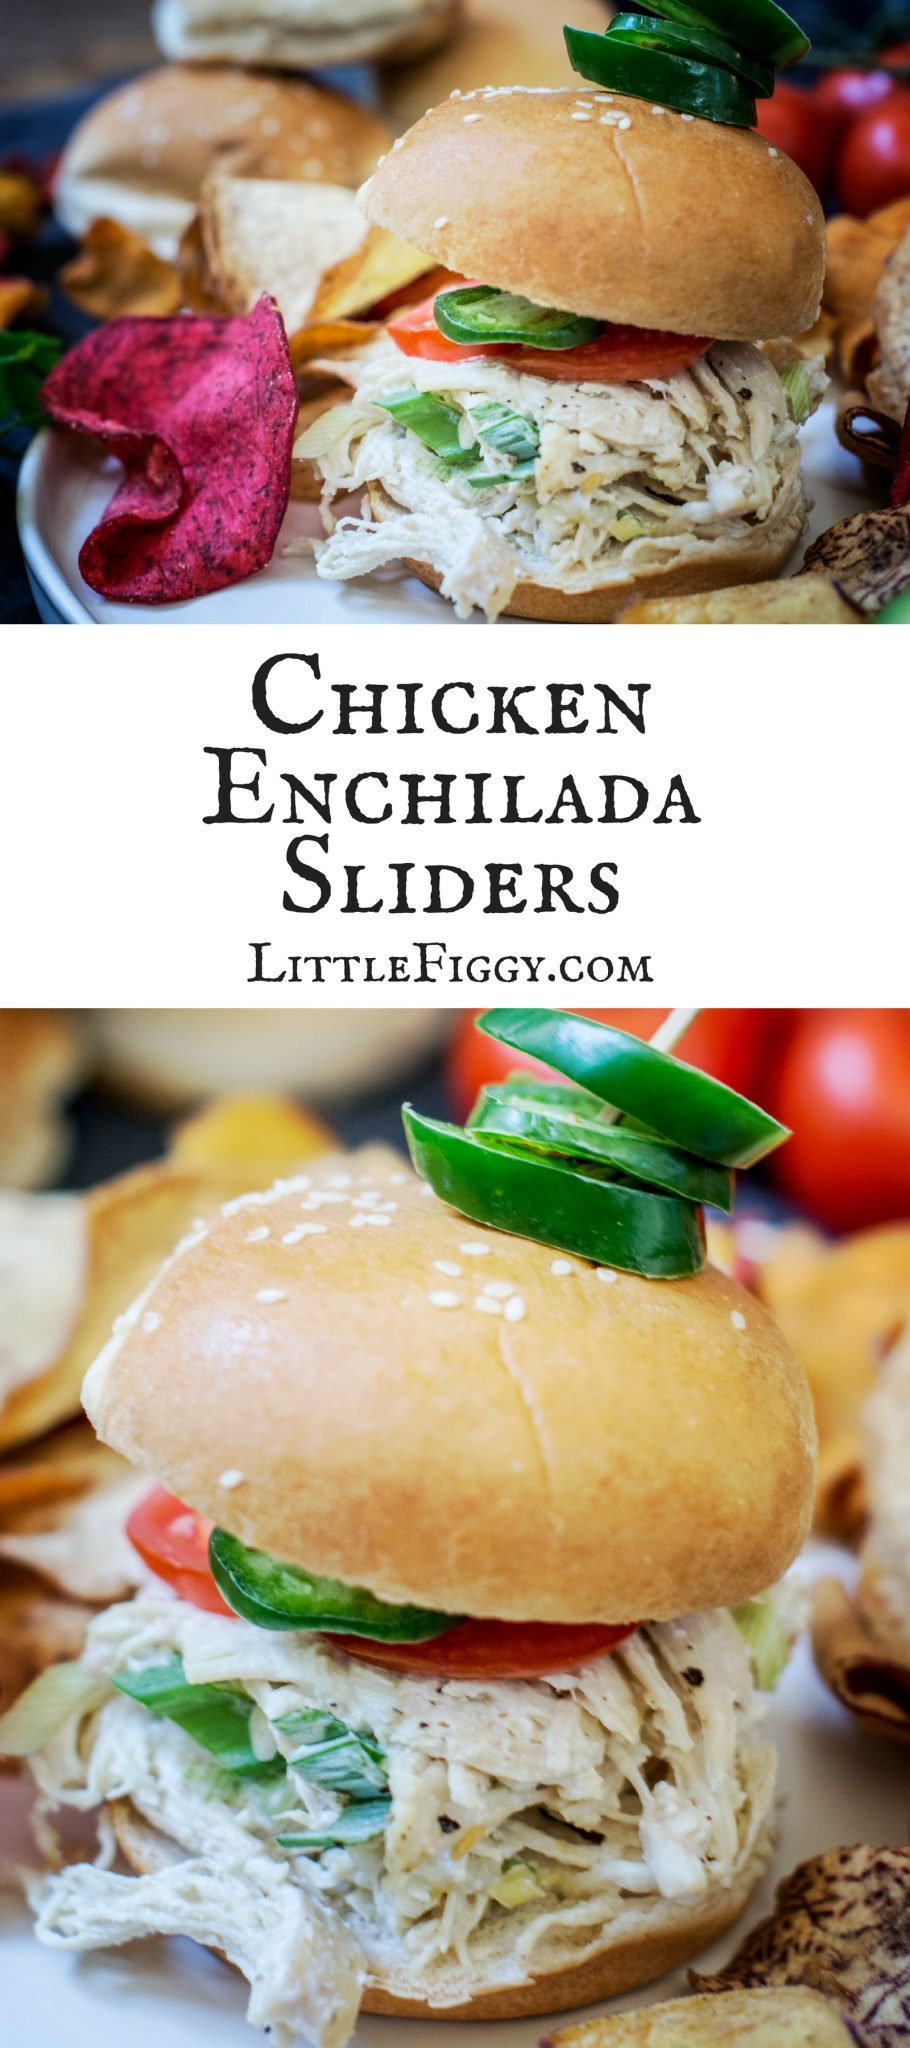 Getting ready for a brilliant get together with these Creamy Chicken Enchilada Sliders using my favorite @PepperidgeFarm Slider Buns! Learn more https://ooh.li/9c64564.  Get the recipe at Little Figgy Food. #Ad #RespectTheBun #LittleBunsBigWin #BakedWithCare